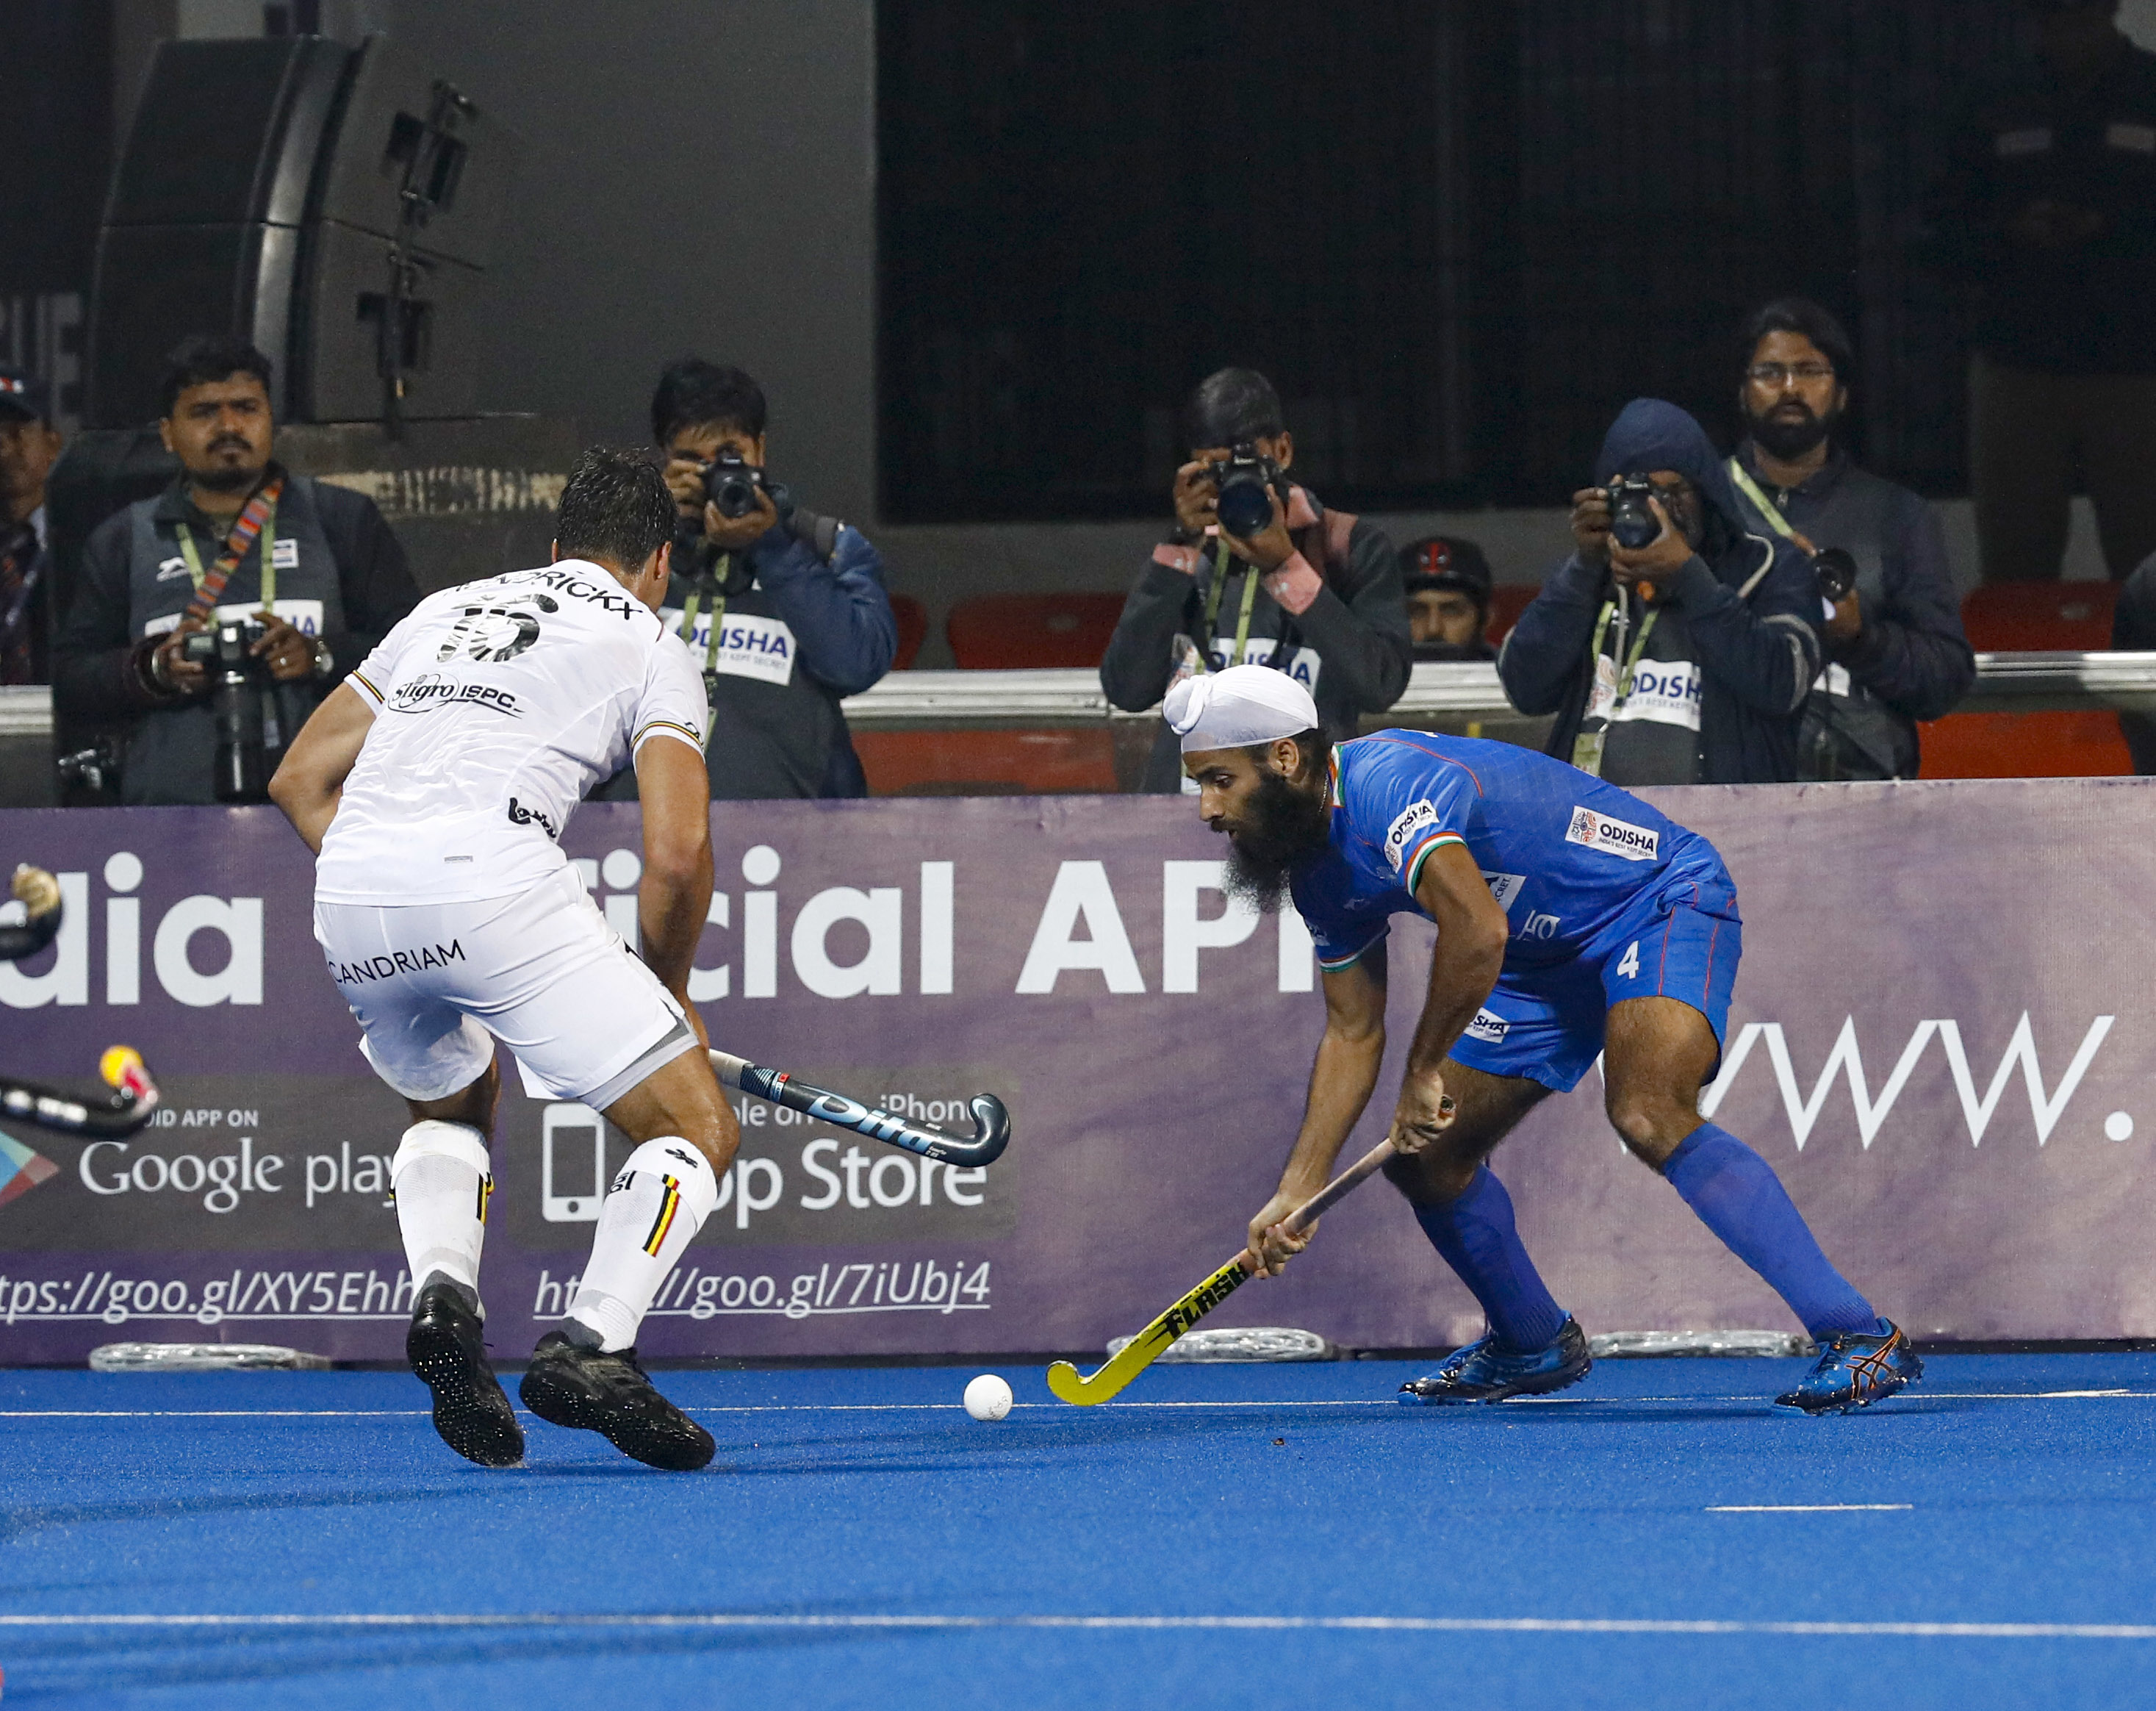 Everyone is really excited for what is to come for Indian hockey, says Defender Jarmanpreet Singh